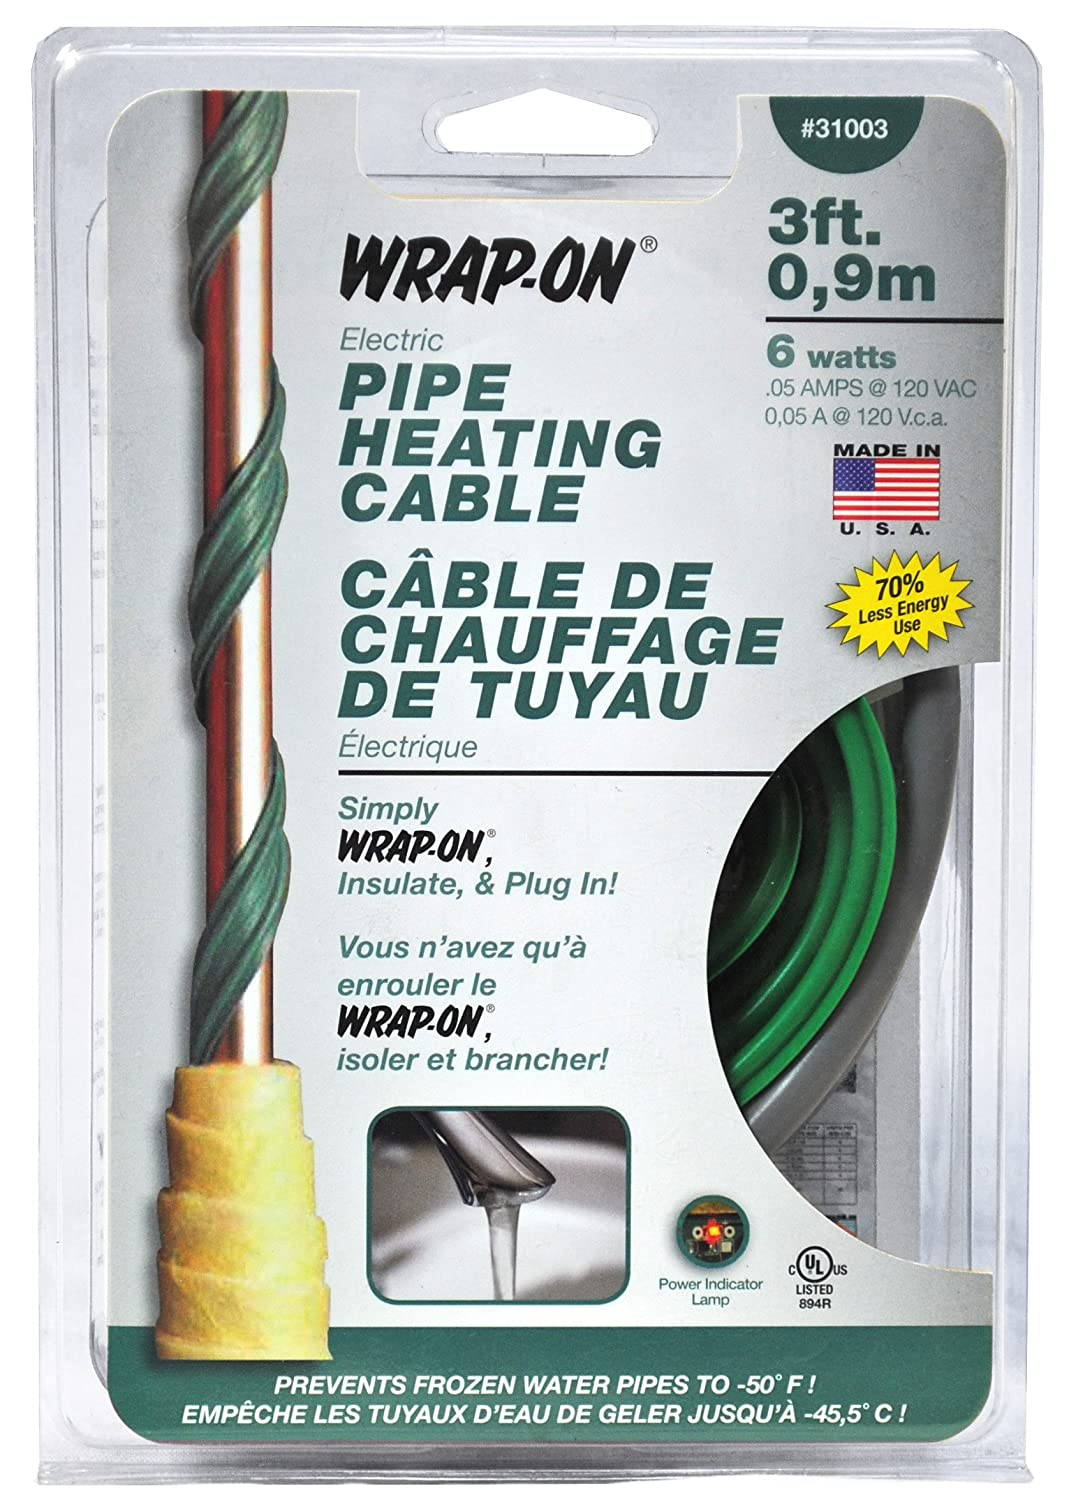 Wrap On Pipe Heating Cable 3 Feet 120 Volt Built In Thermostat Conduit Schedule 40 And 80 Pdf Flexible Metal Electrical Low Wattage 31003